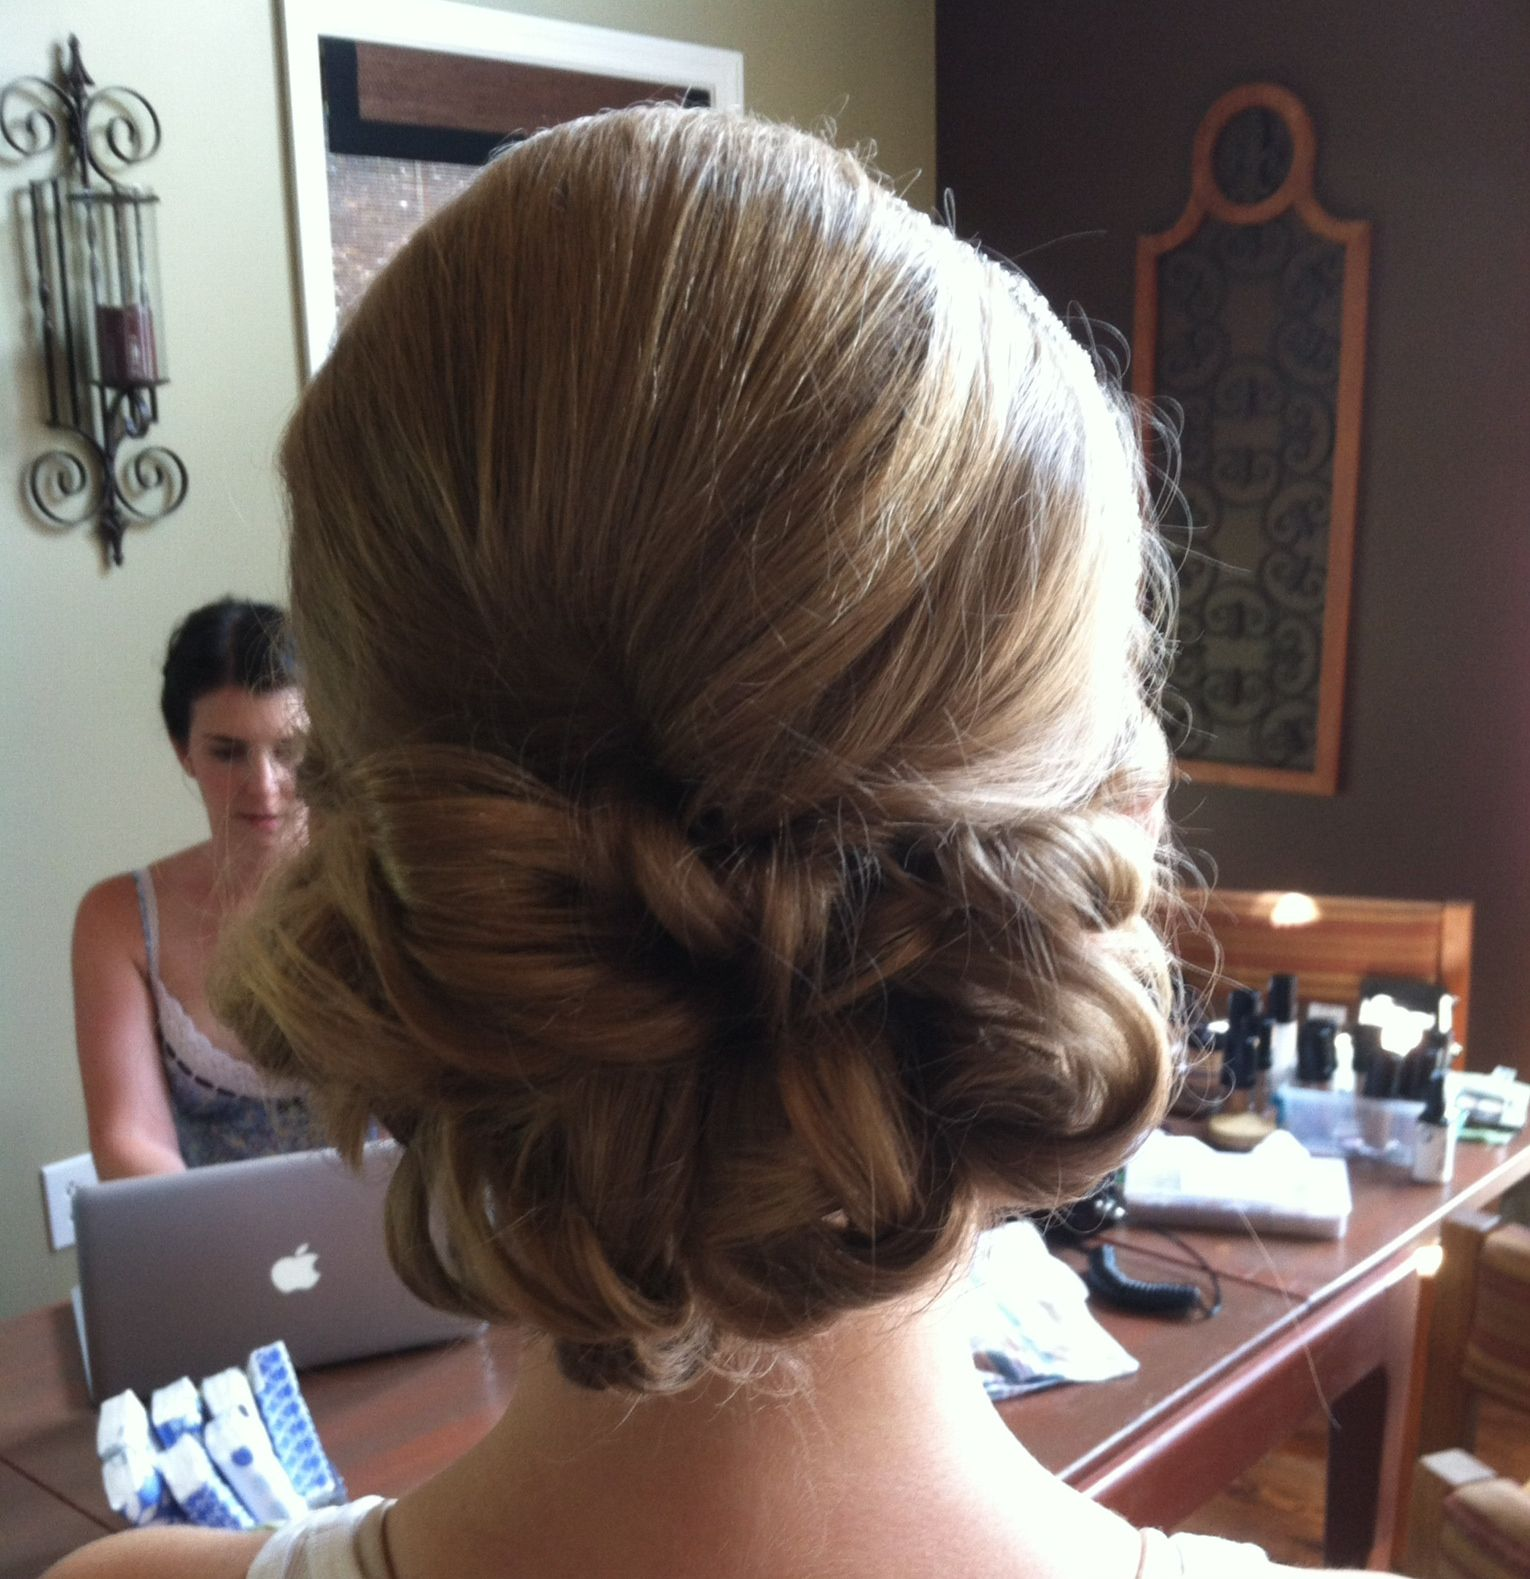 hair by rochelle noone pittsburgh pa on location bridal hairstylist